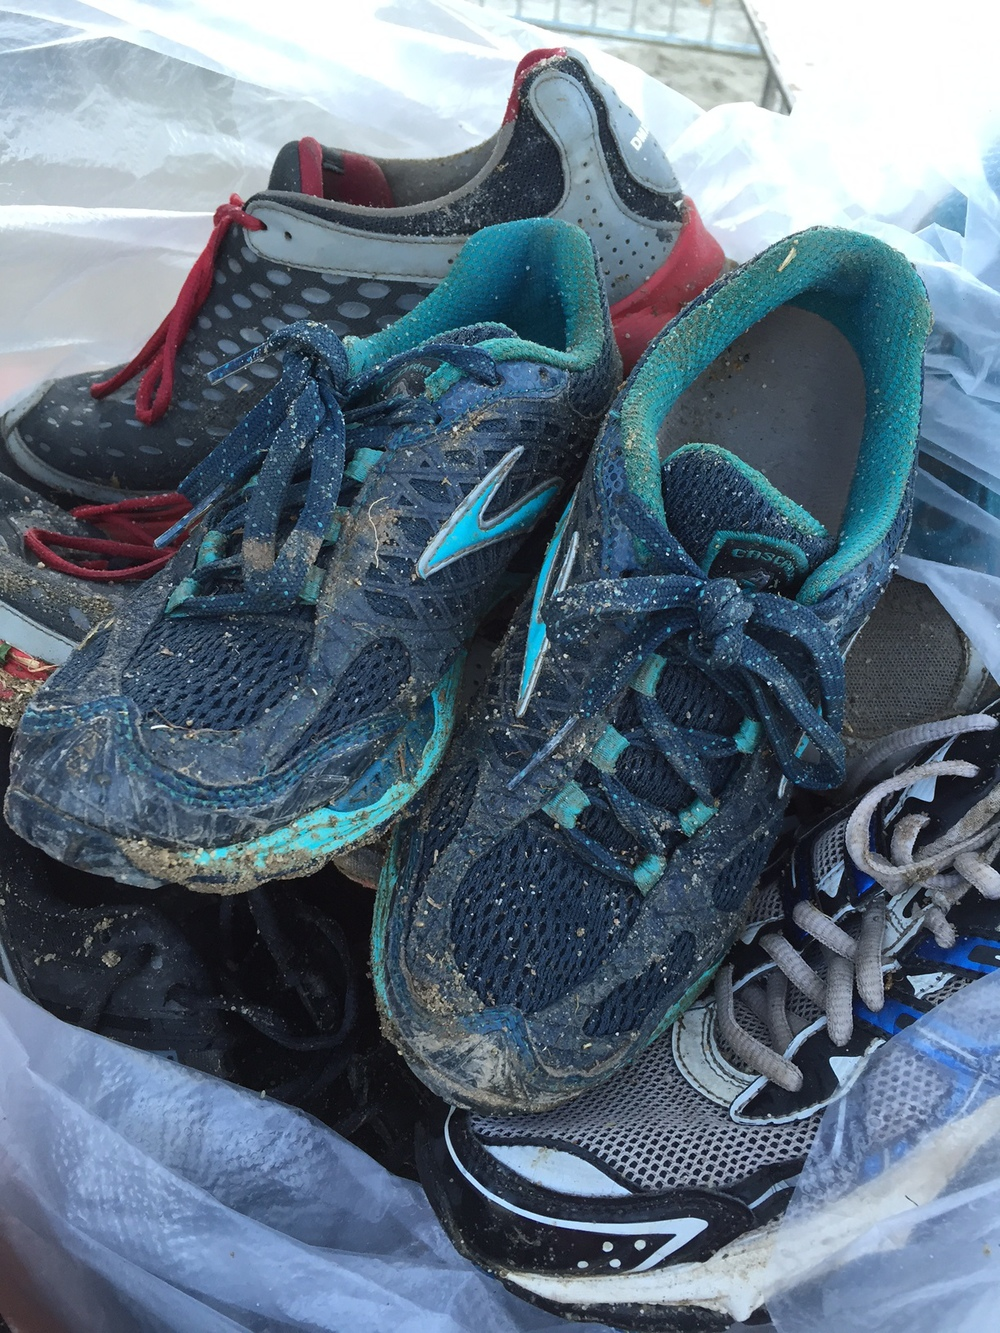 We donated our shoes! They ran some good races, but it was time to retire them.